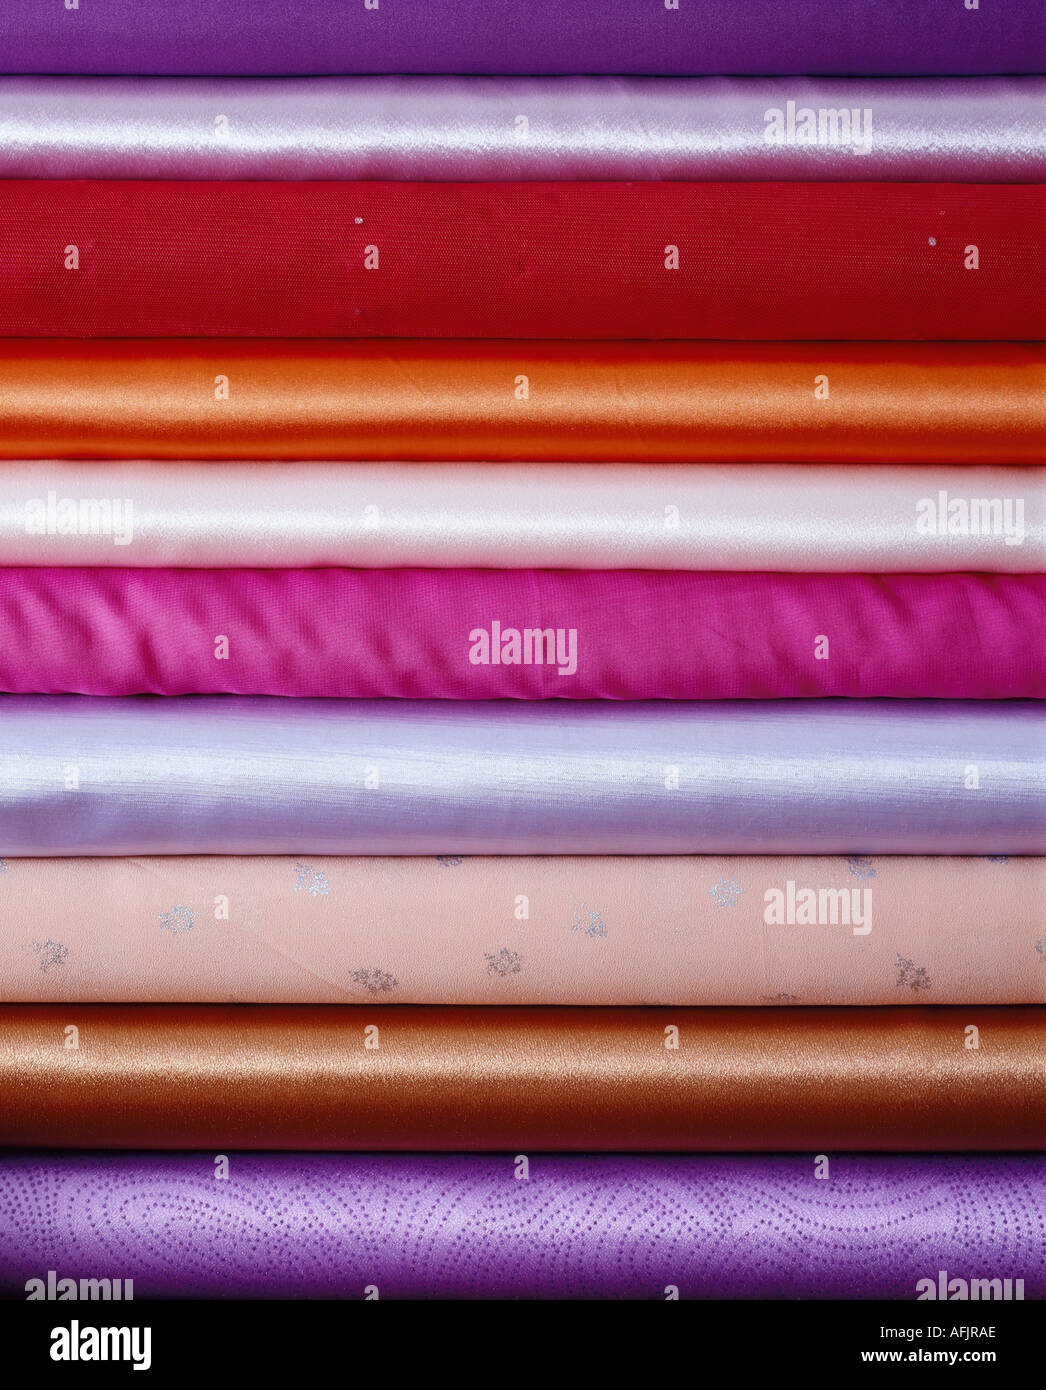 Graphic shot of pile of rolls of silk - Stock Image